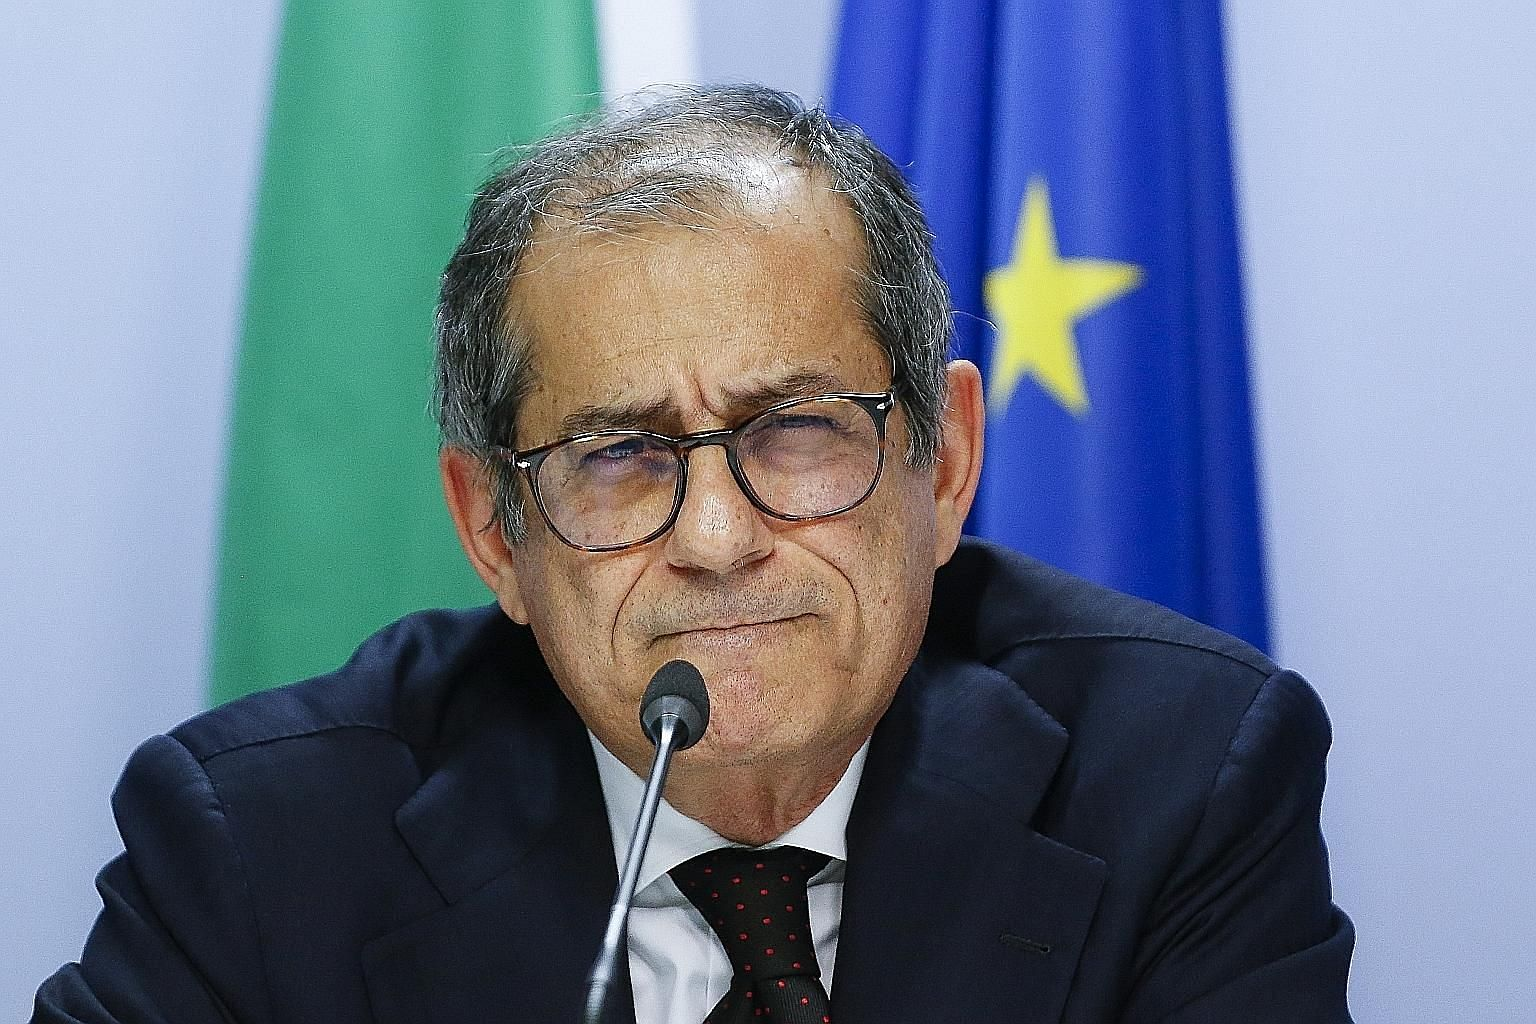 Italian Finance Minister Giovanni Tria cites the collapse of a bridge in which 43 people died, and the damage on the economy inflicted by bad weather as further evidence of the urgent need for extra spending.